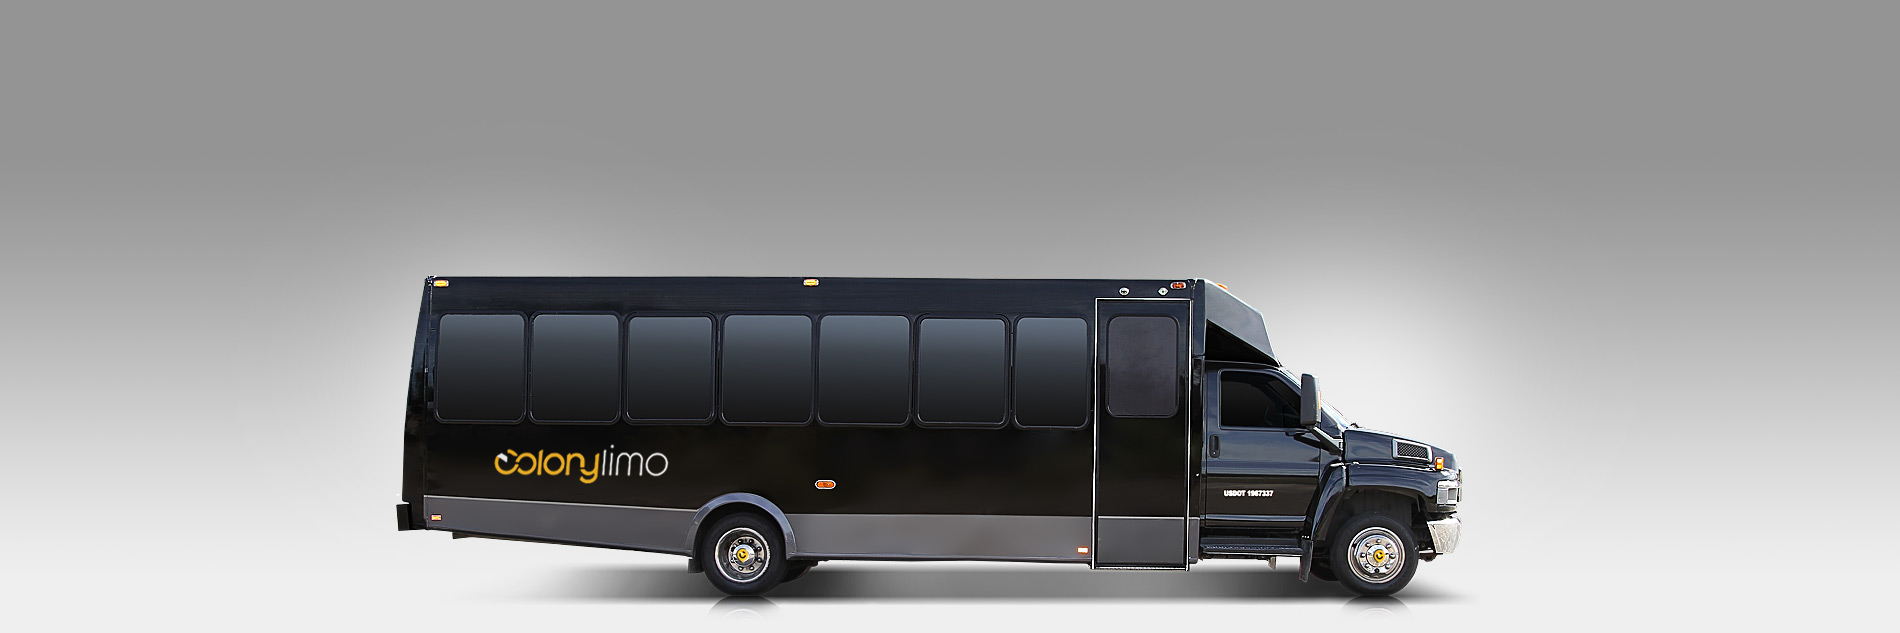 Party Bus - 30 Passenger Black - Colony Limo Service Houston